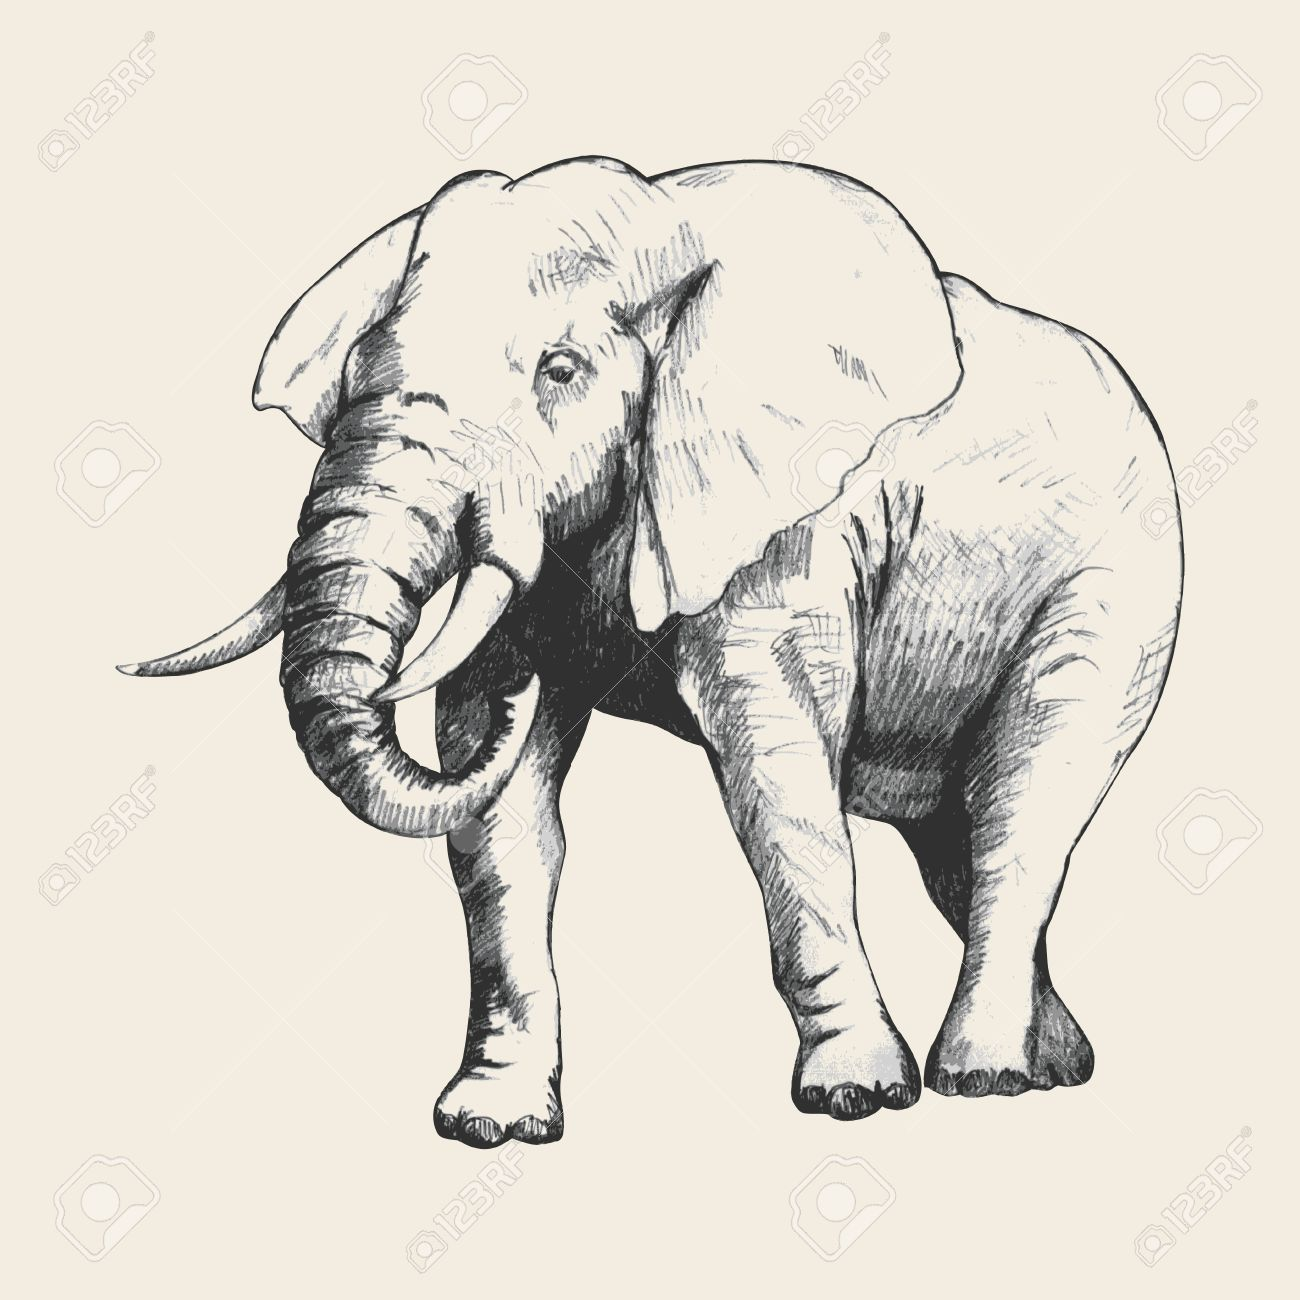 Pencil sketch of an elephant traced in adobe illustrator